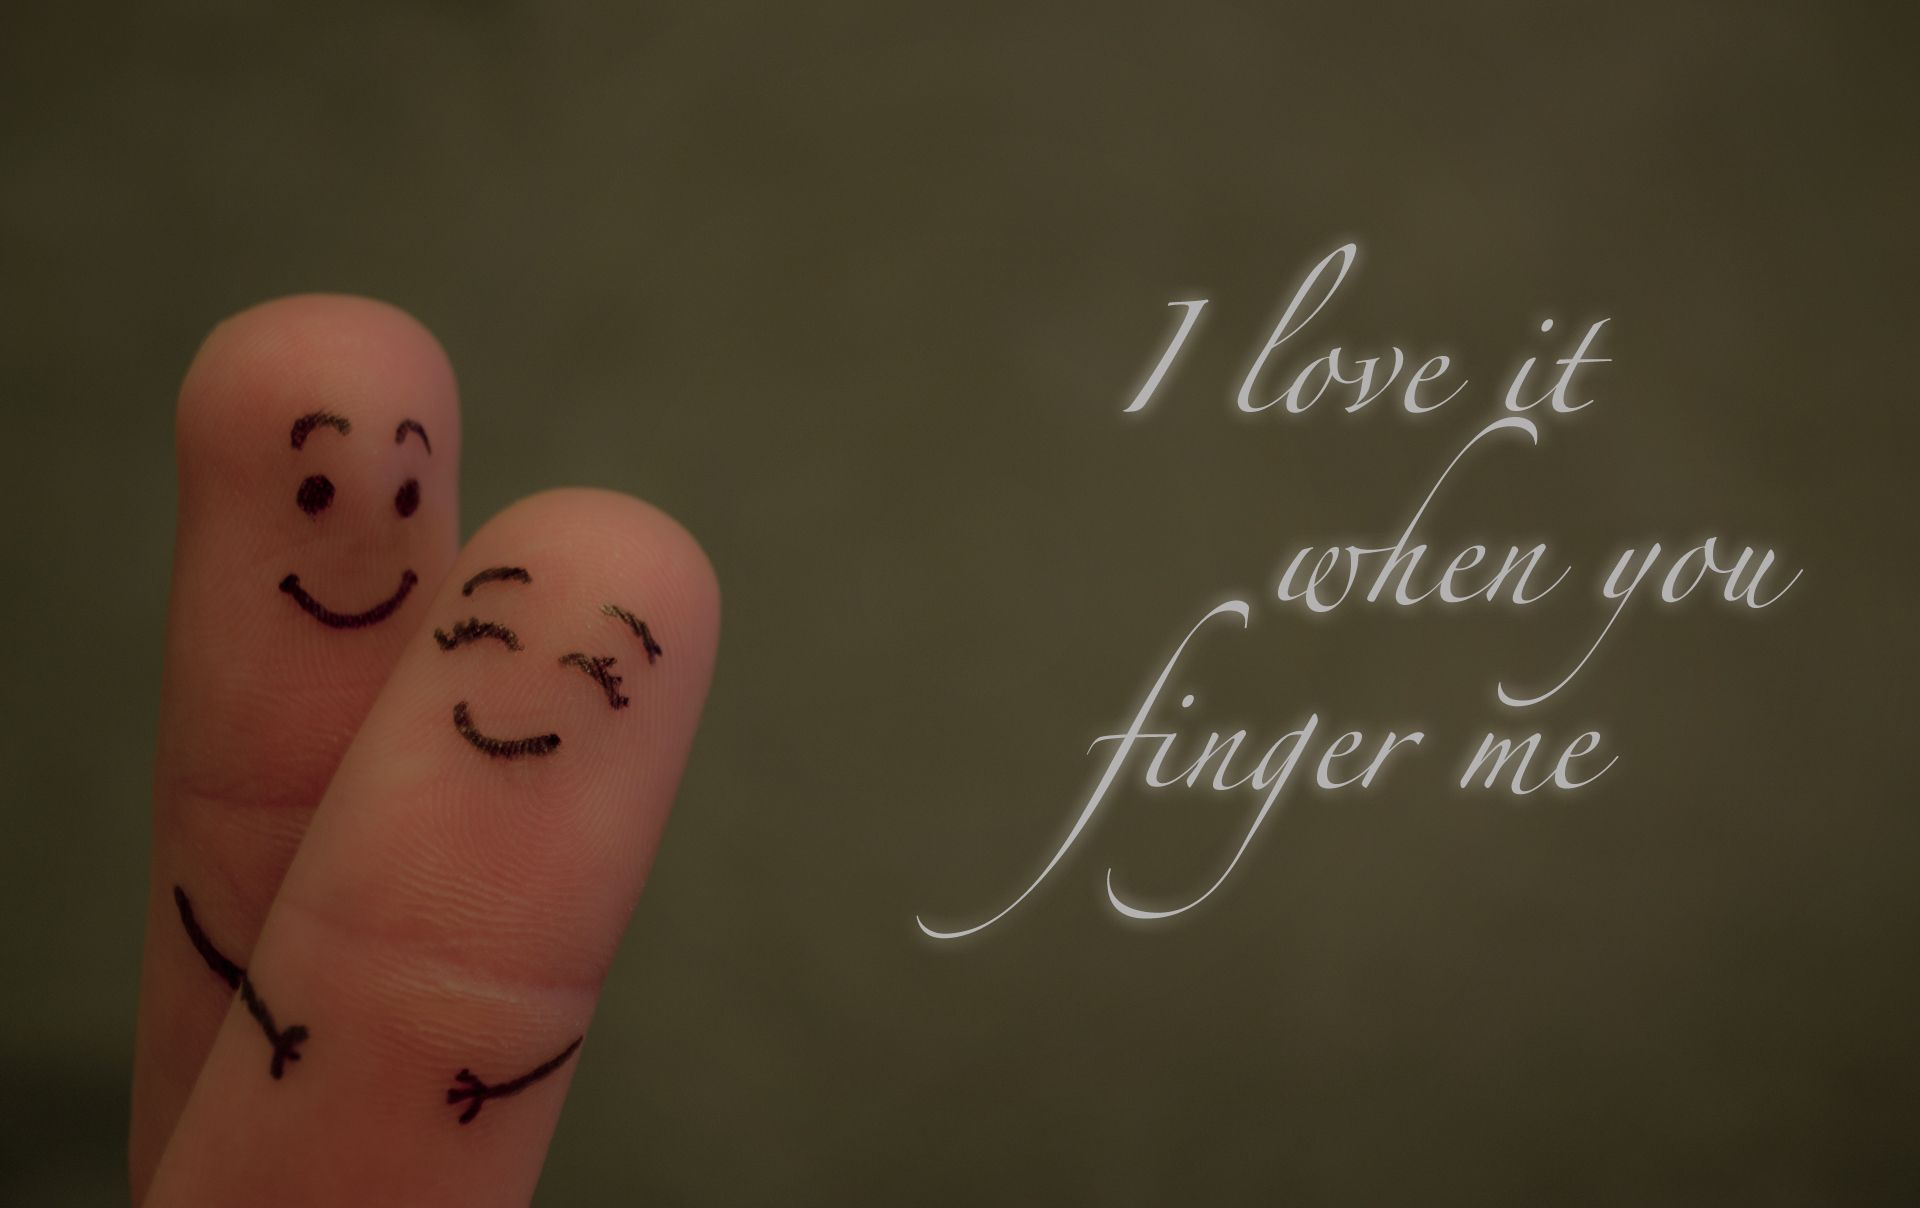 Love Hug Images Wallpaper : cute finger love scene like hug with quotes HD wallpaper ... Share Some Laughs Pinterest